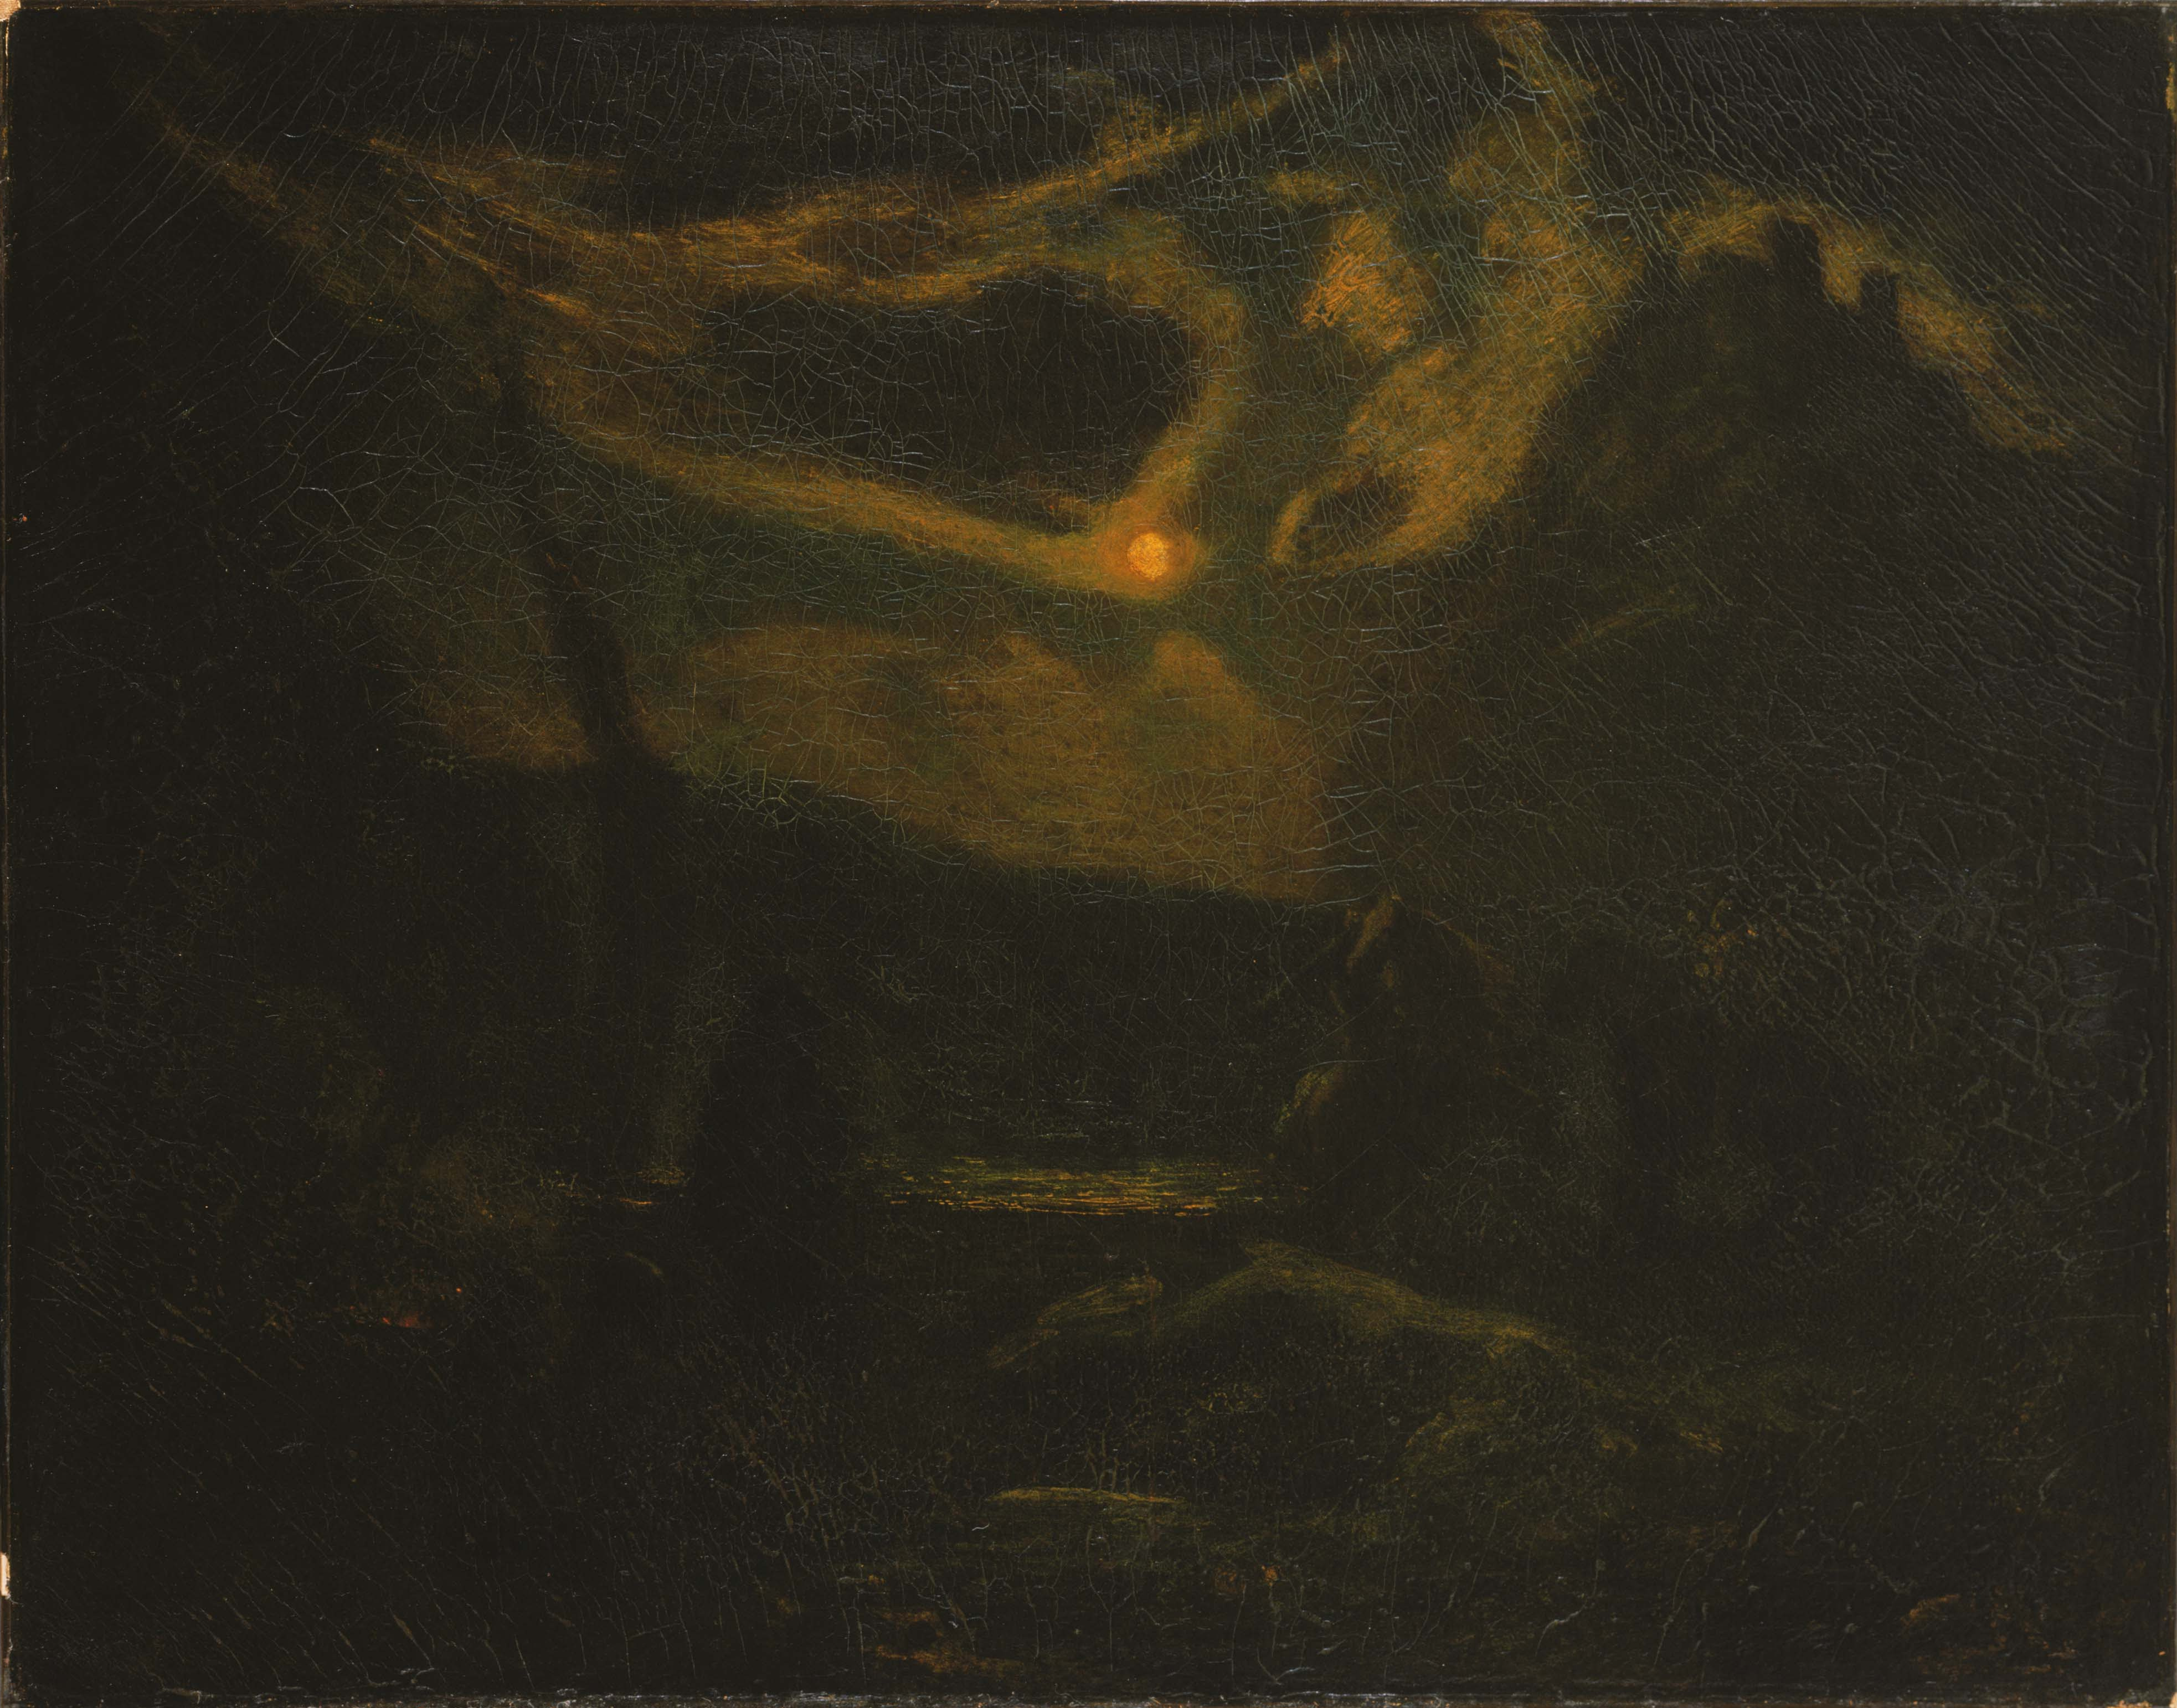 Albert_Pinkham_Ryder_-_Macbeth_and_the_Witches_-_Google_Art_Project